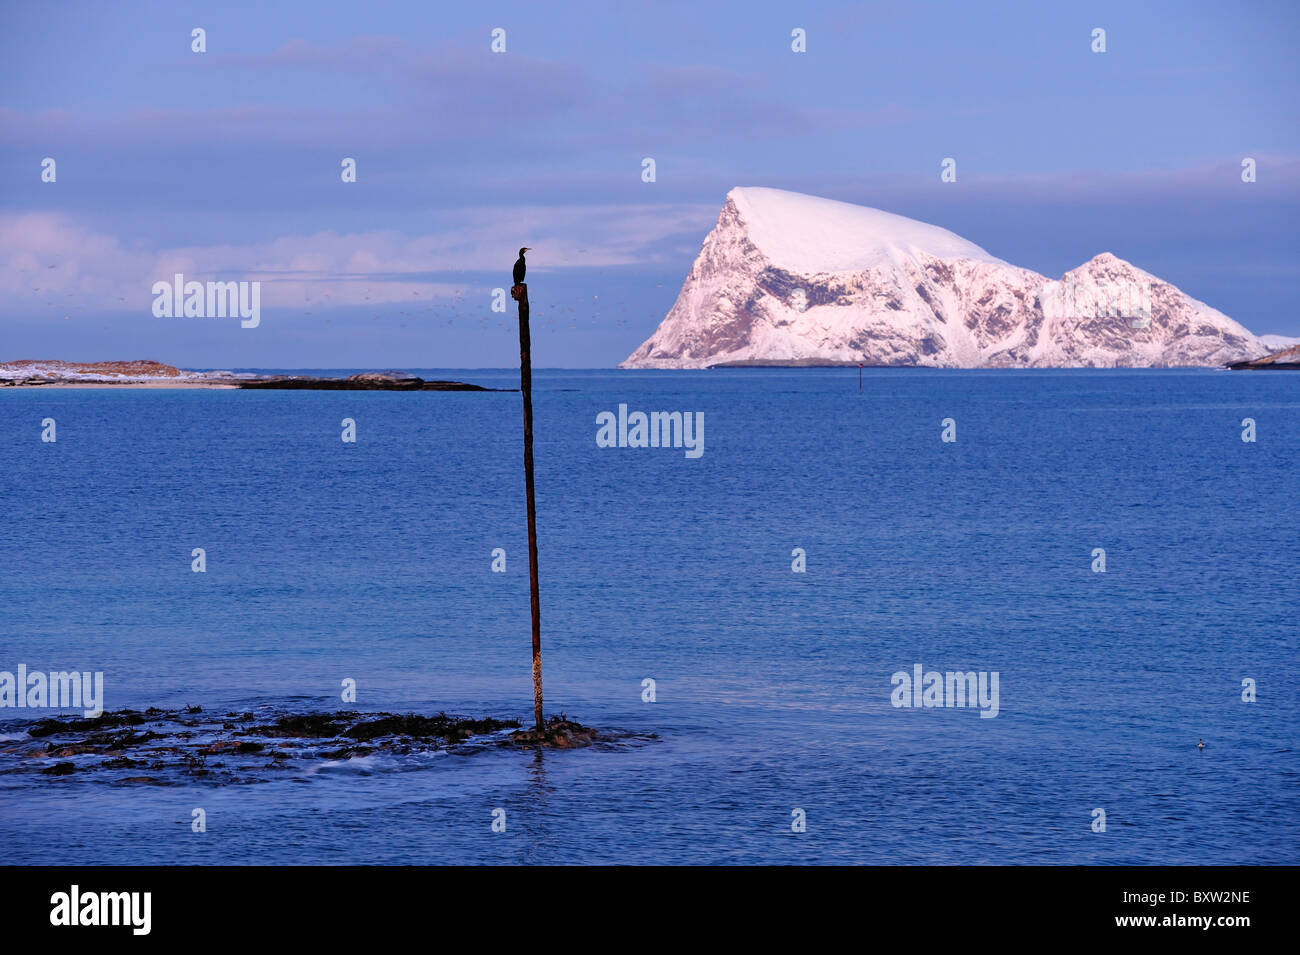 Cormorant sits on top of a pole in the dark blue sea. Polar night north of the Arctic Circle in North Norway. Stock Photo